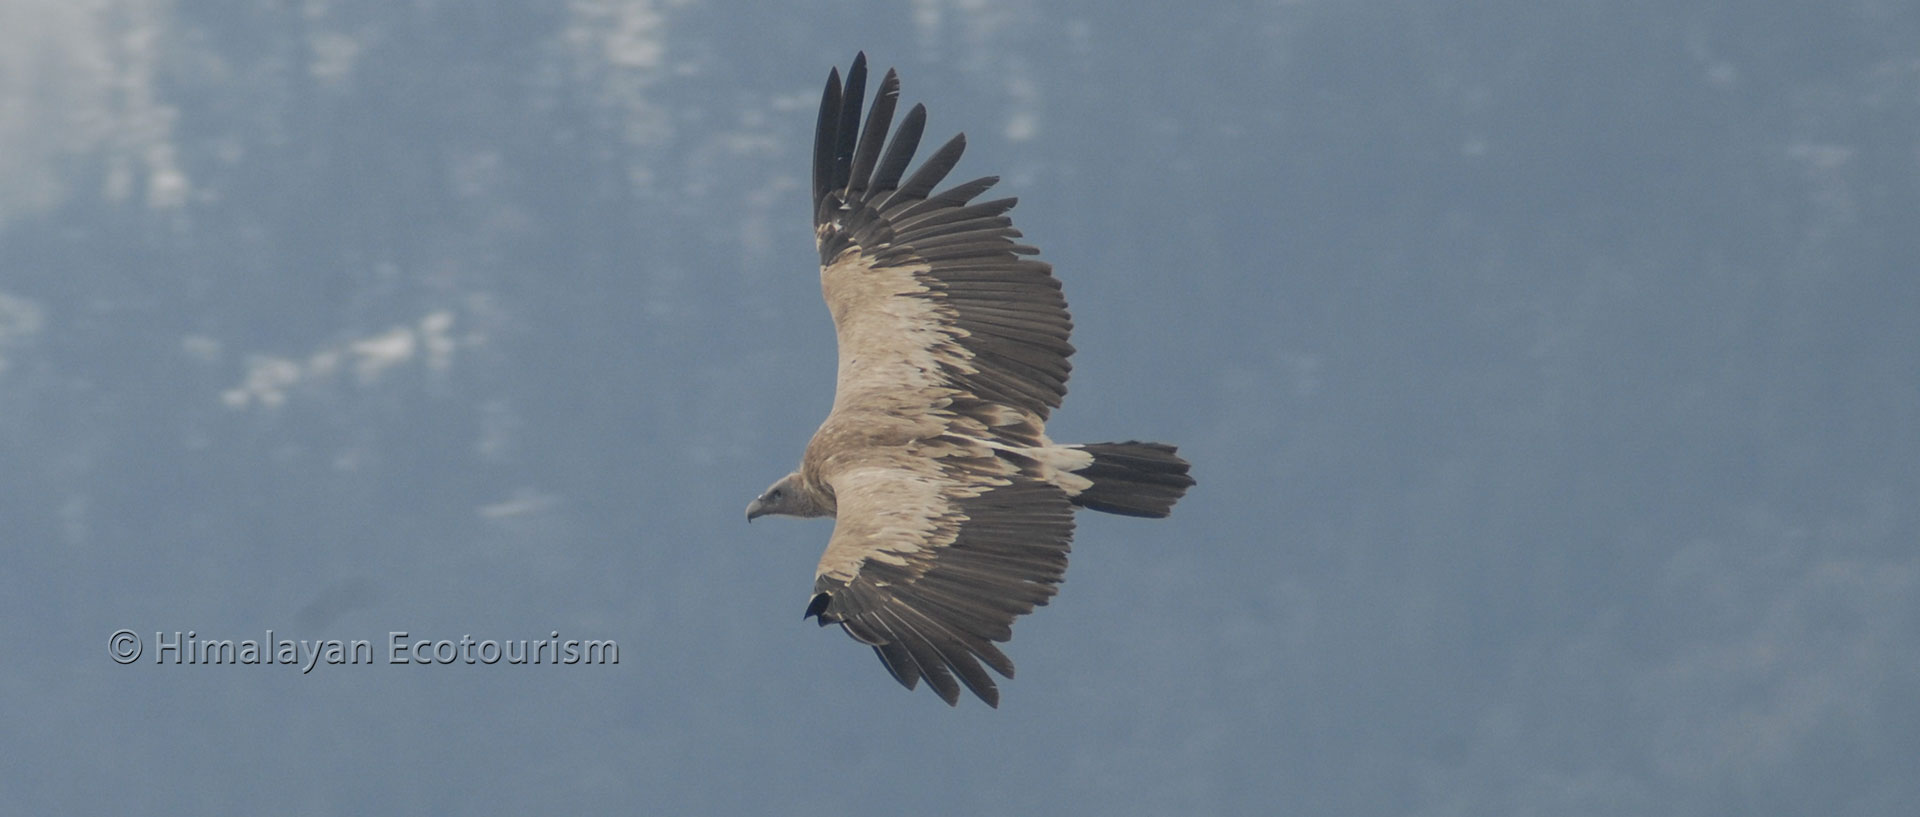 The Himalayan Griffon Vulture